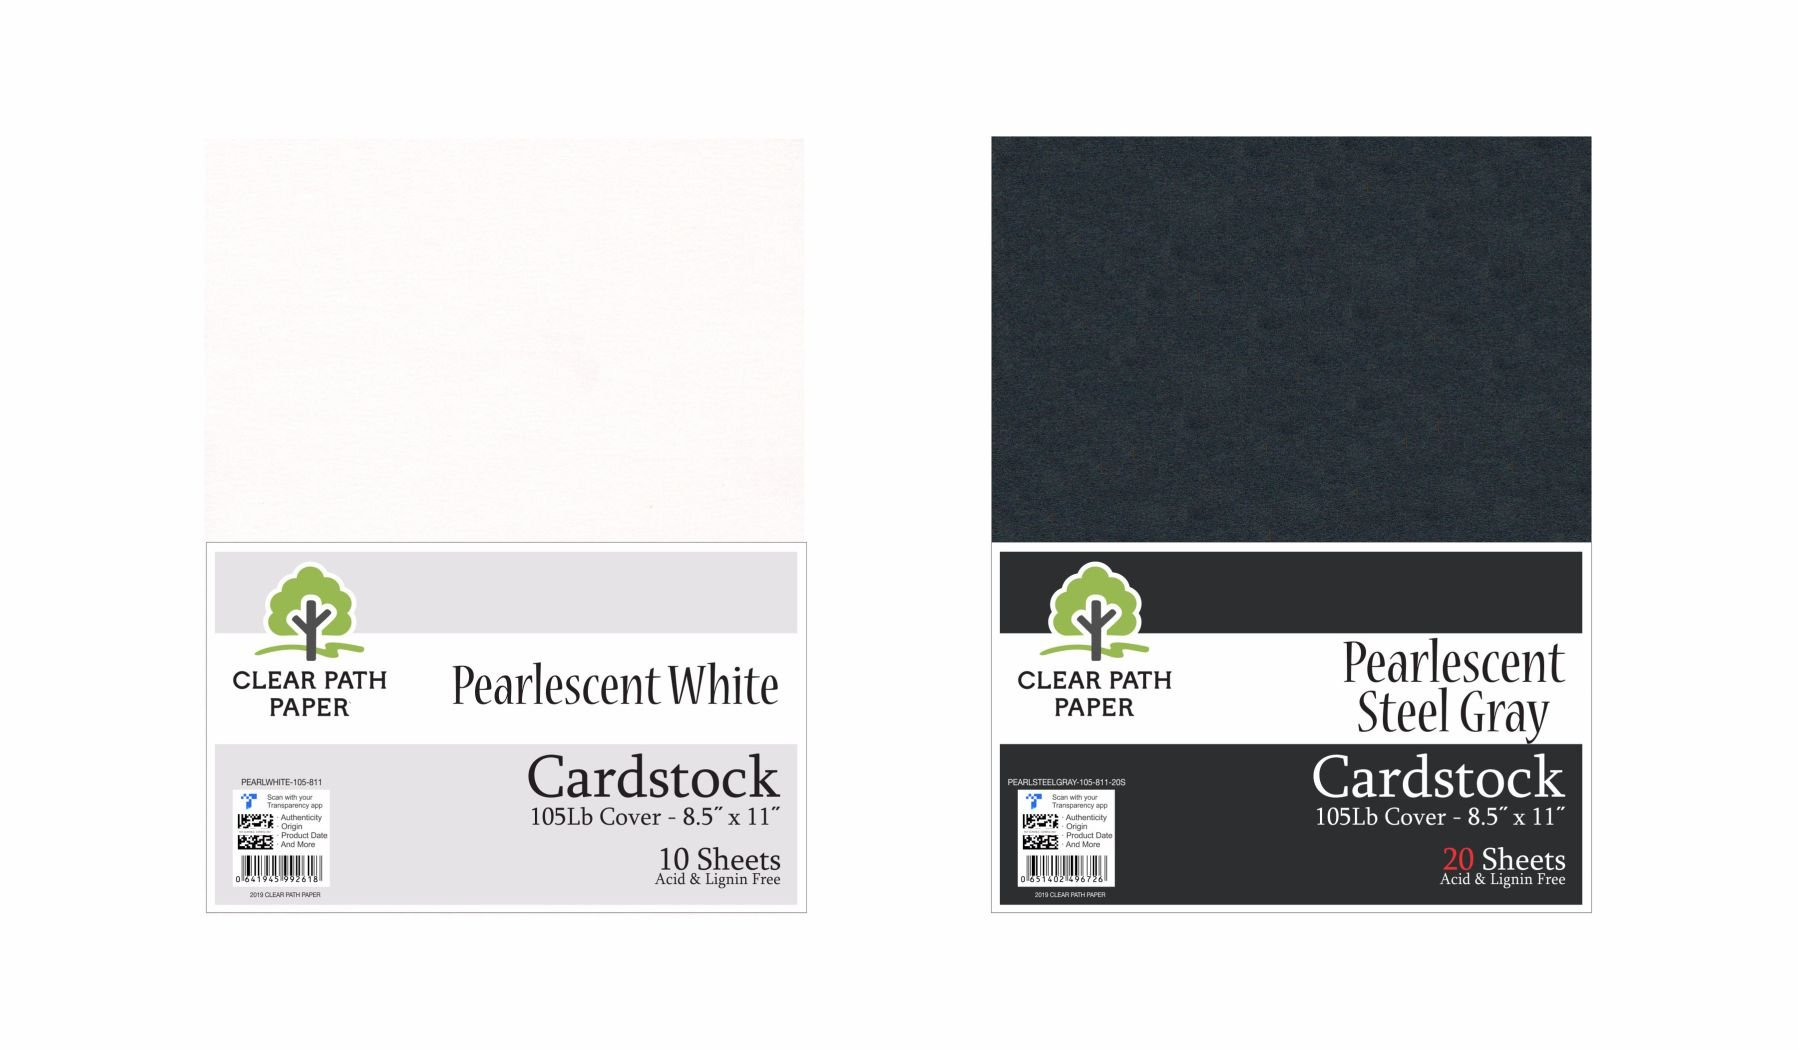 Image of an Amazon bundle of Clear Path Paper cardstock in Pearlescent Steel Gray and Pearlescent White